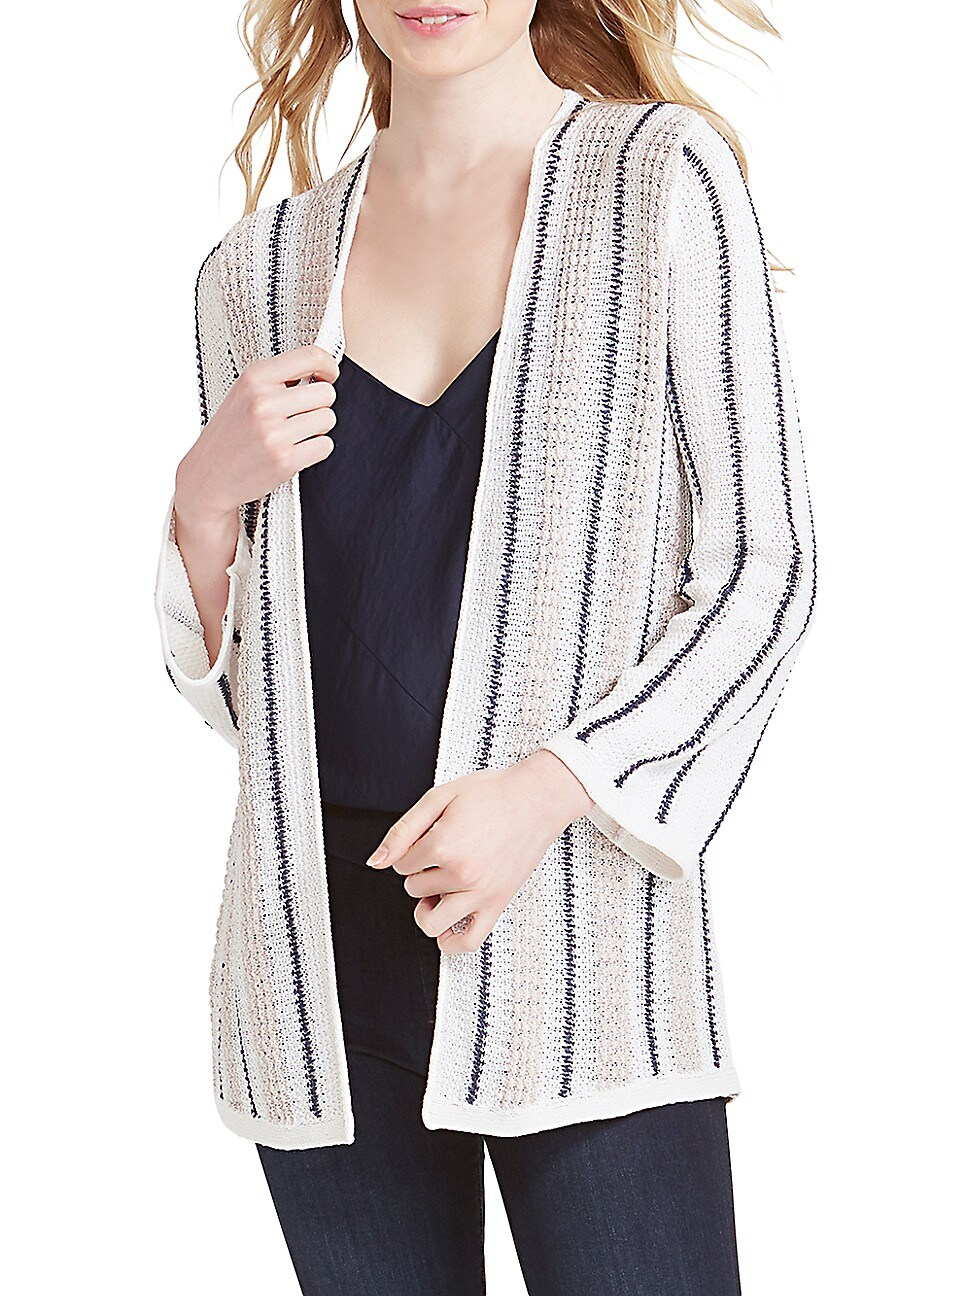 Nic + Zoe WOMEN'S PASSAGE KNIT CARDIGAN